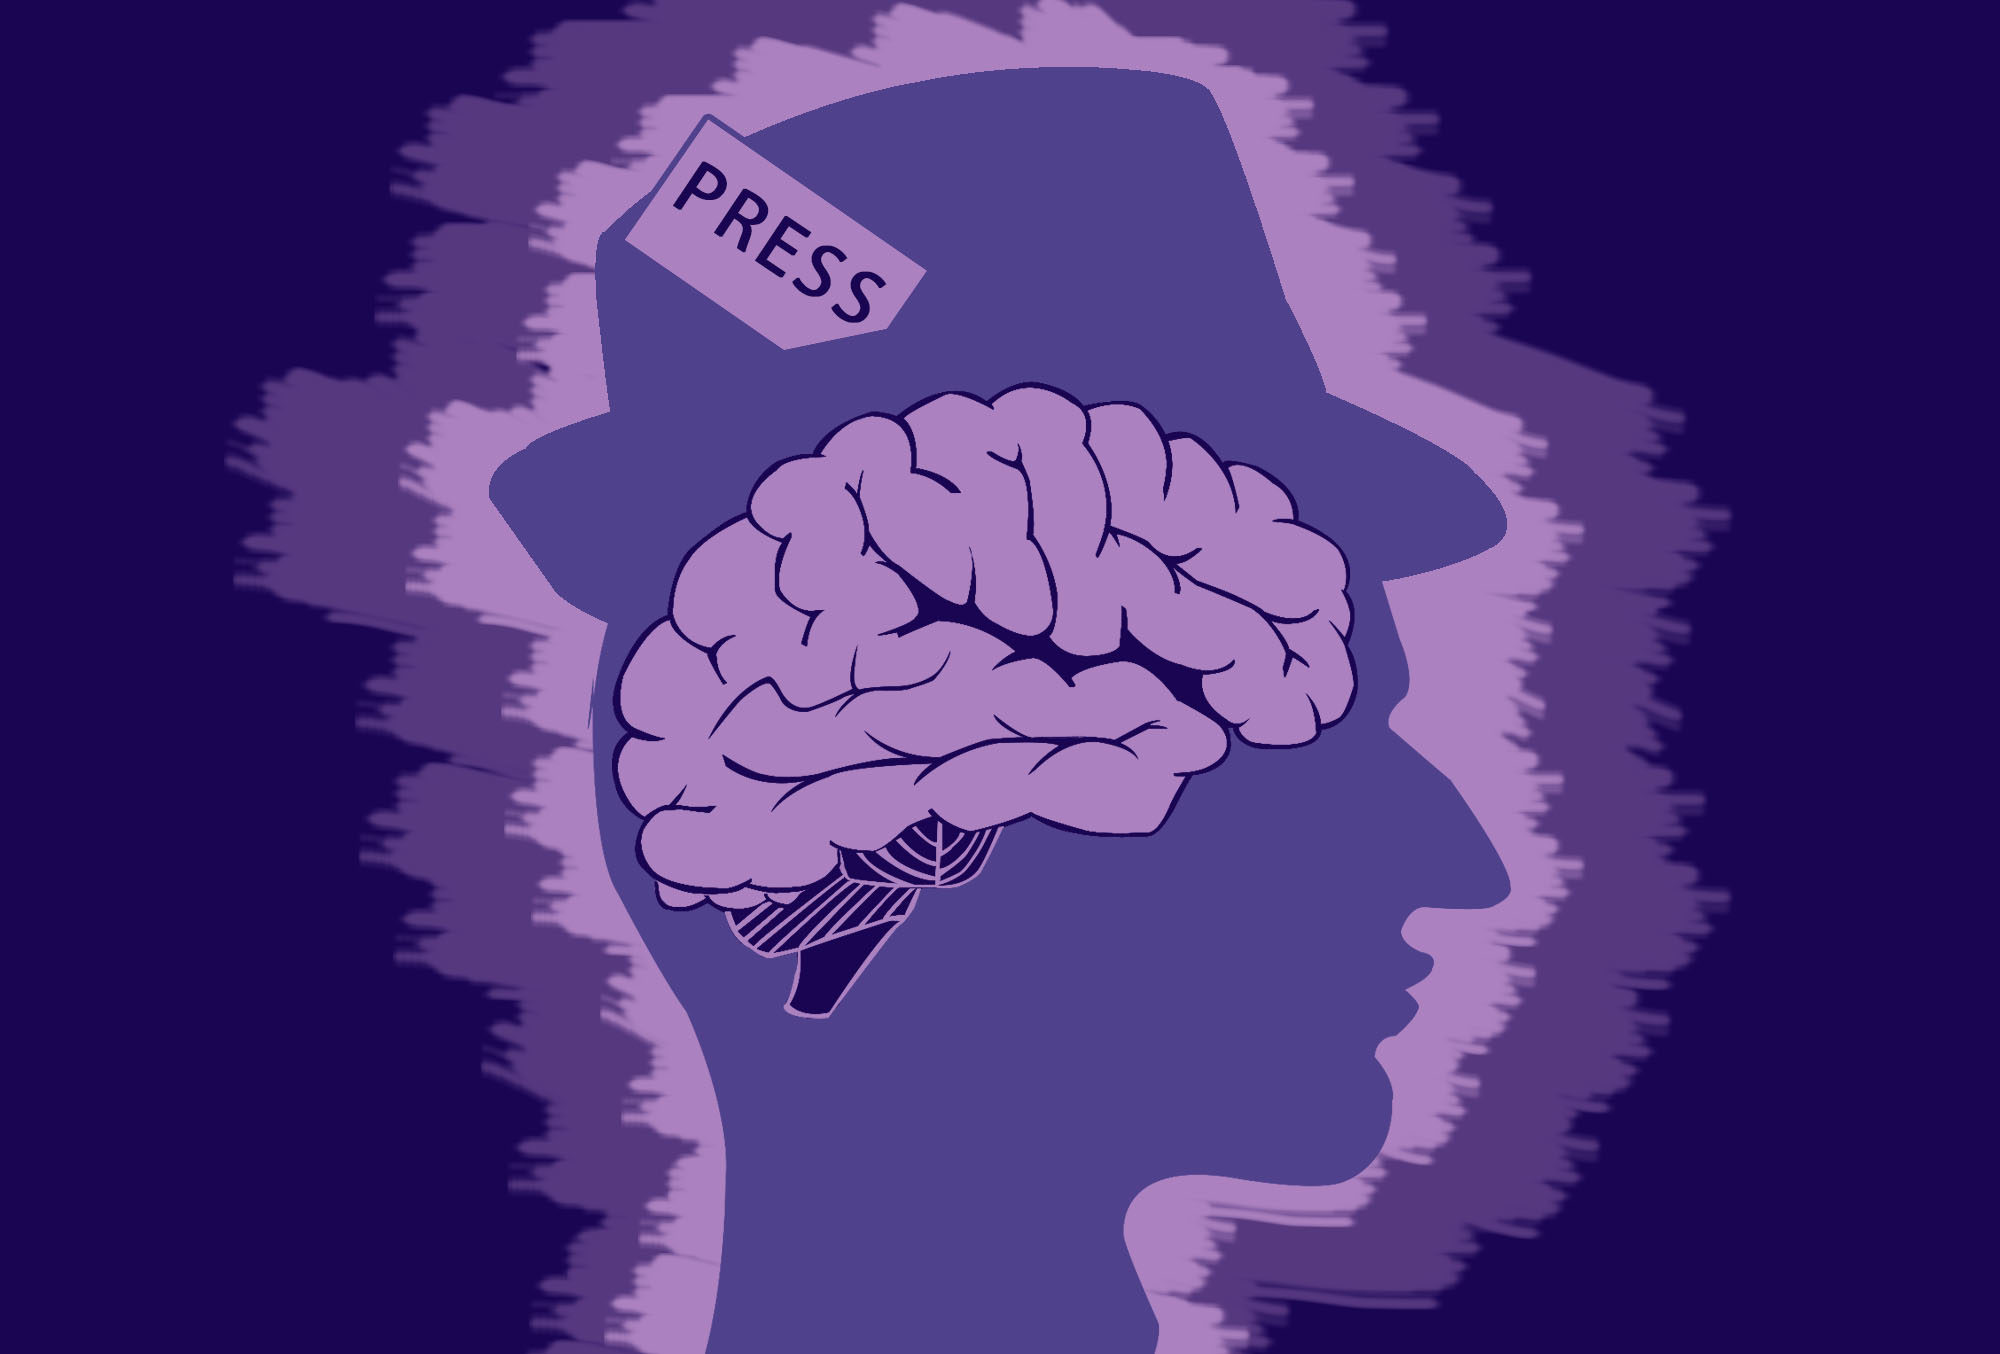 Illustration of a brain in the outline of a head wearing a press hat